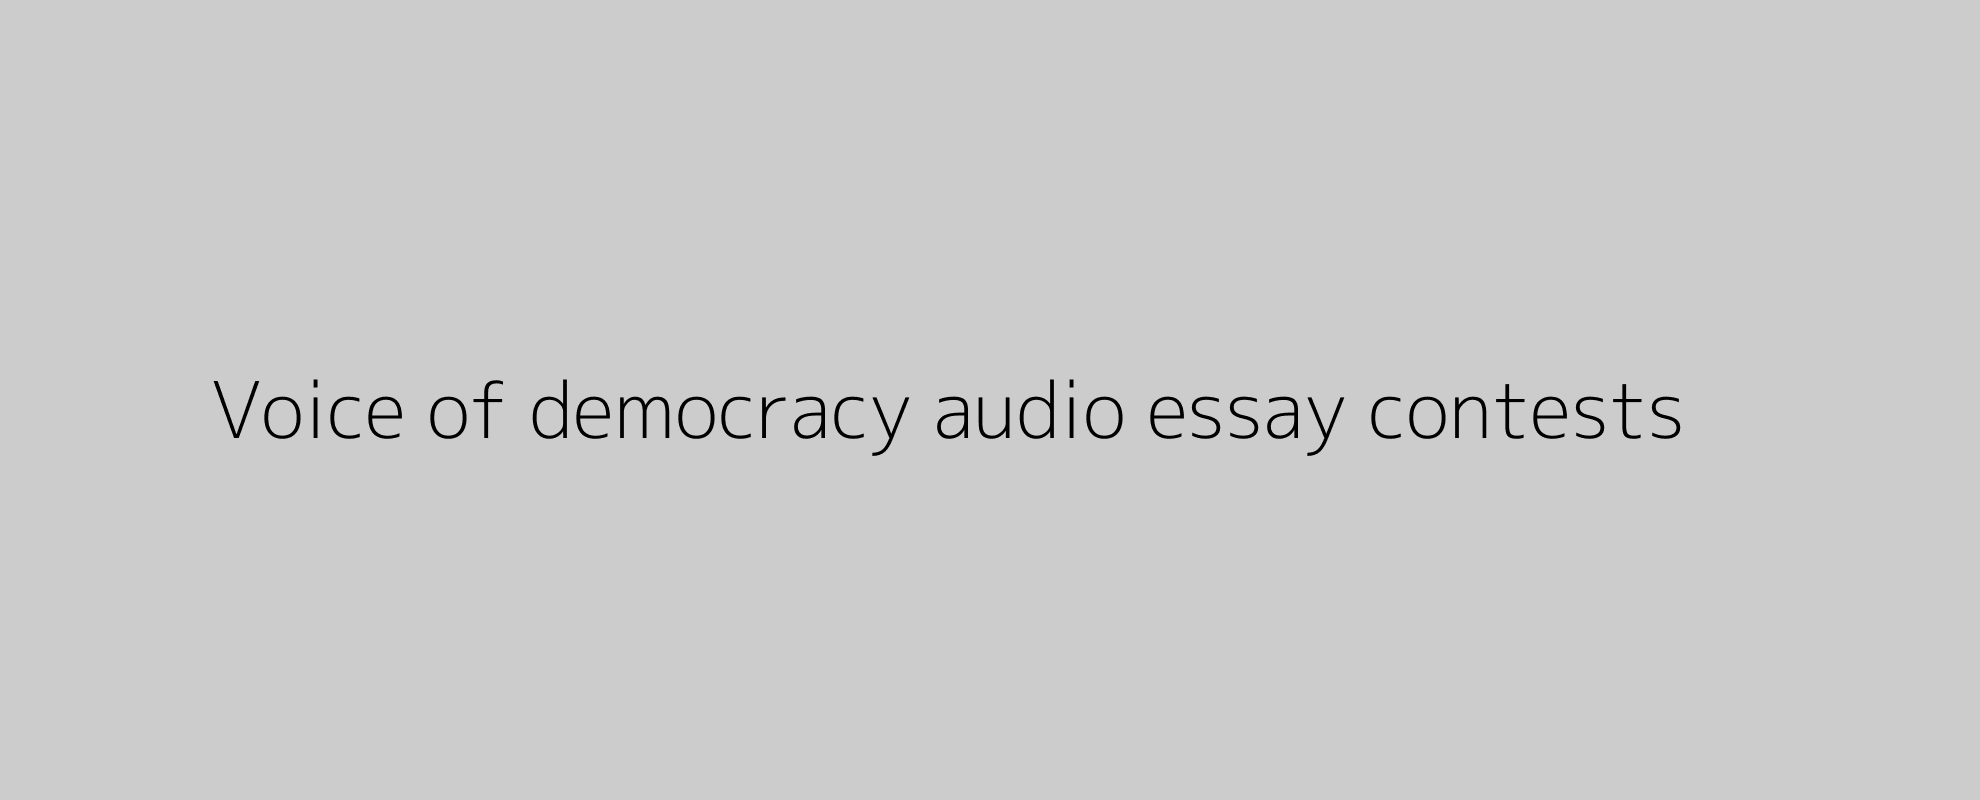 Voice of democracy audio essay contests